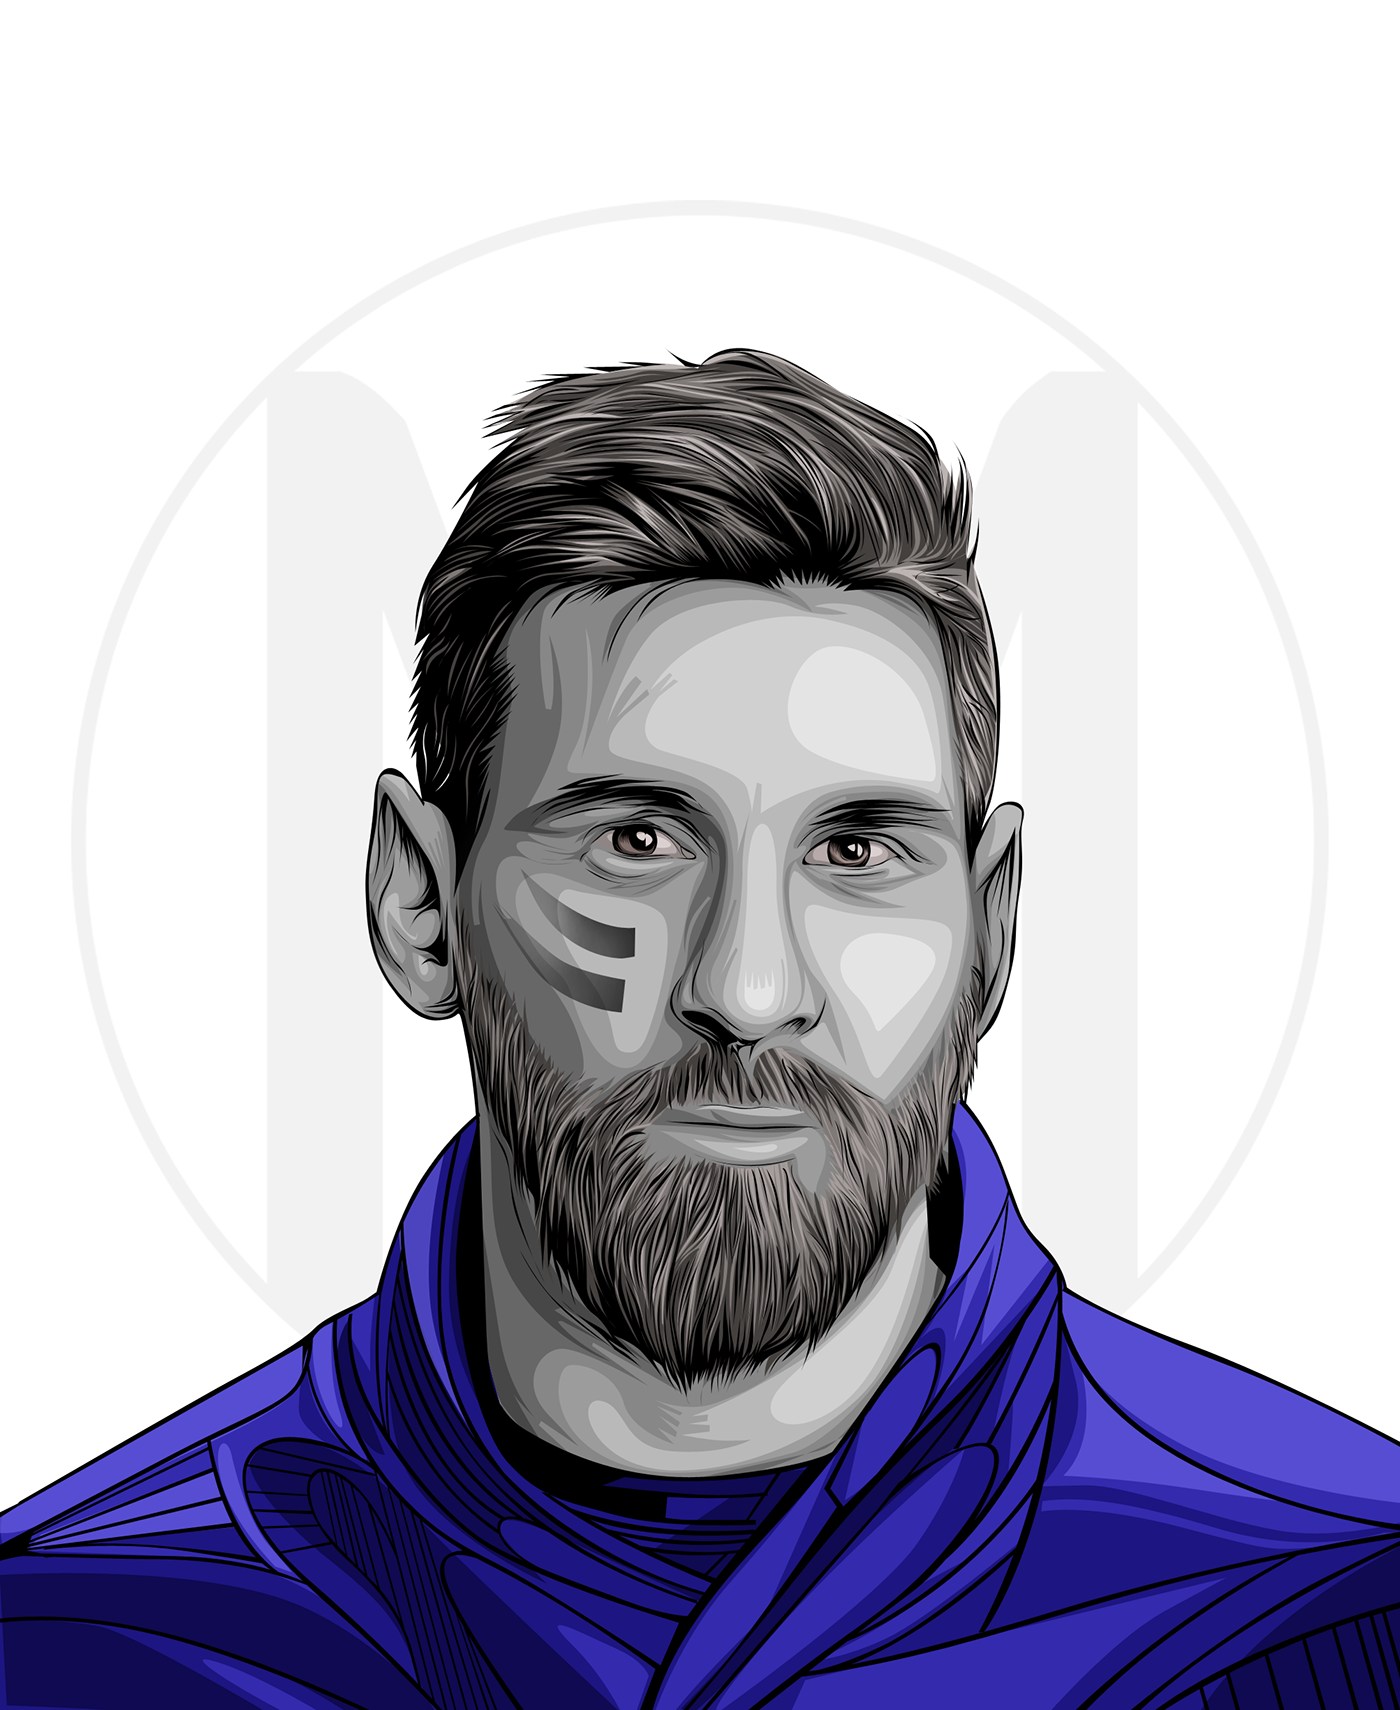 Drawing messi sketching. On behance thank you